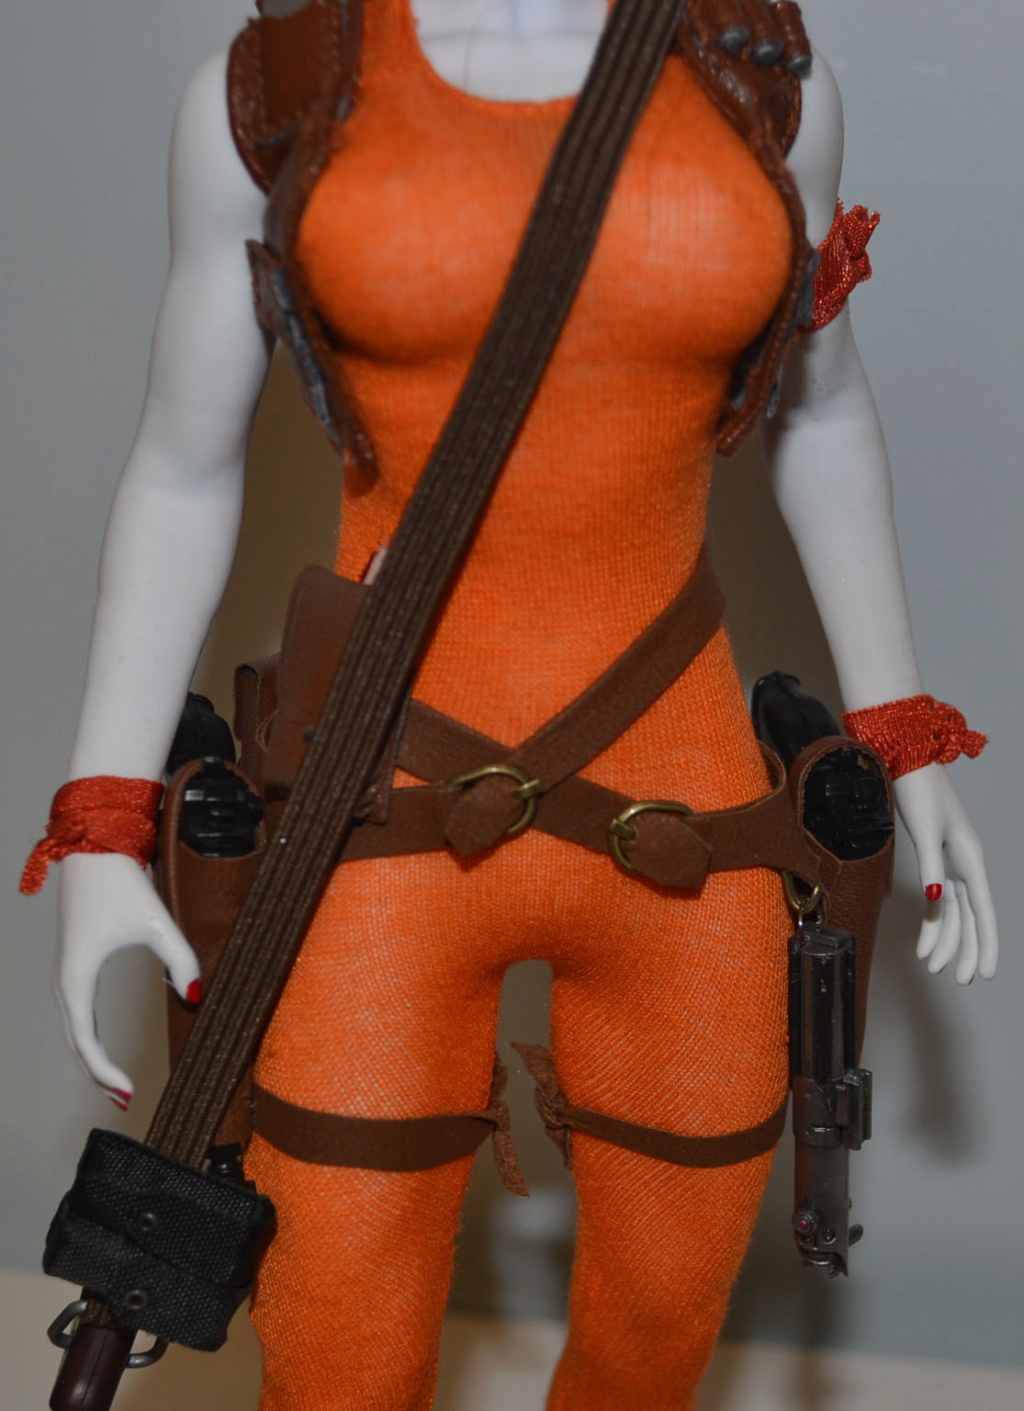 bountyhunter - Custom/Kitbash: Aurra Sing - Star Wars Bounty Hunter (Episode I) _dsc3129